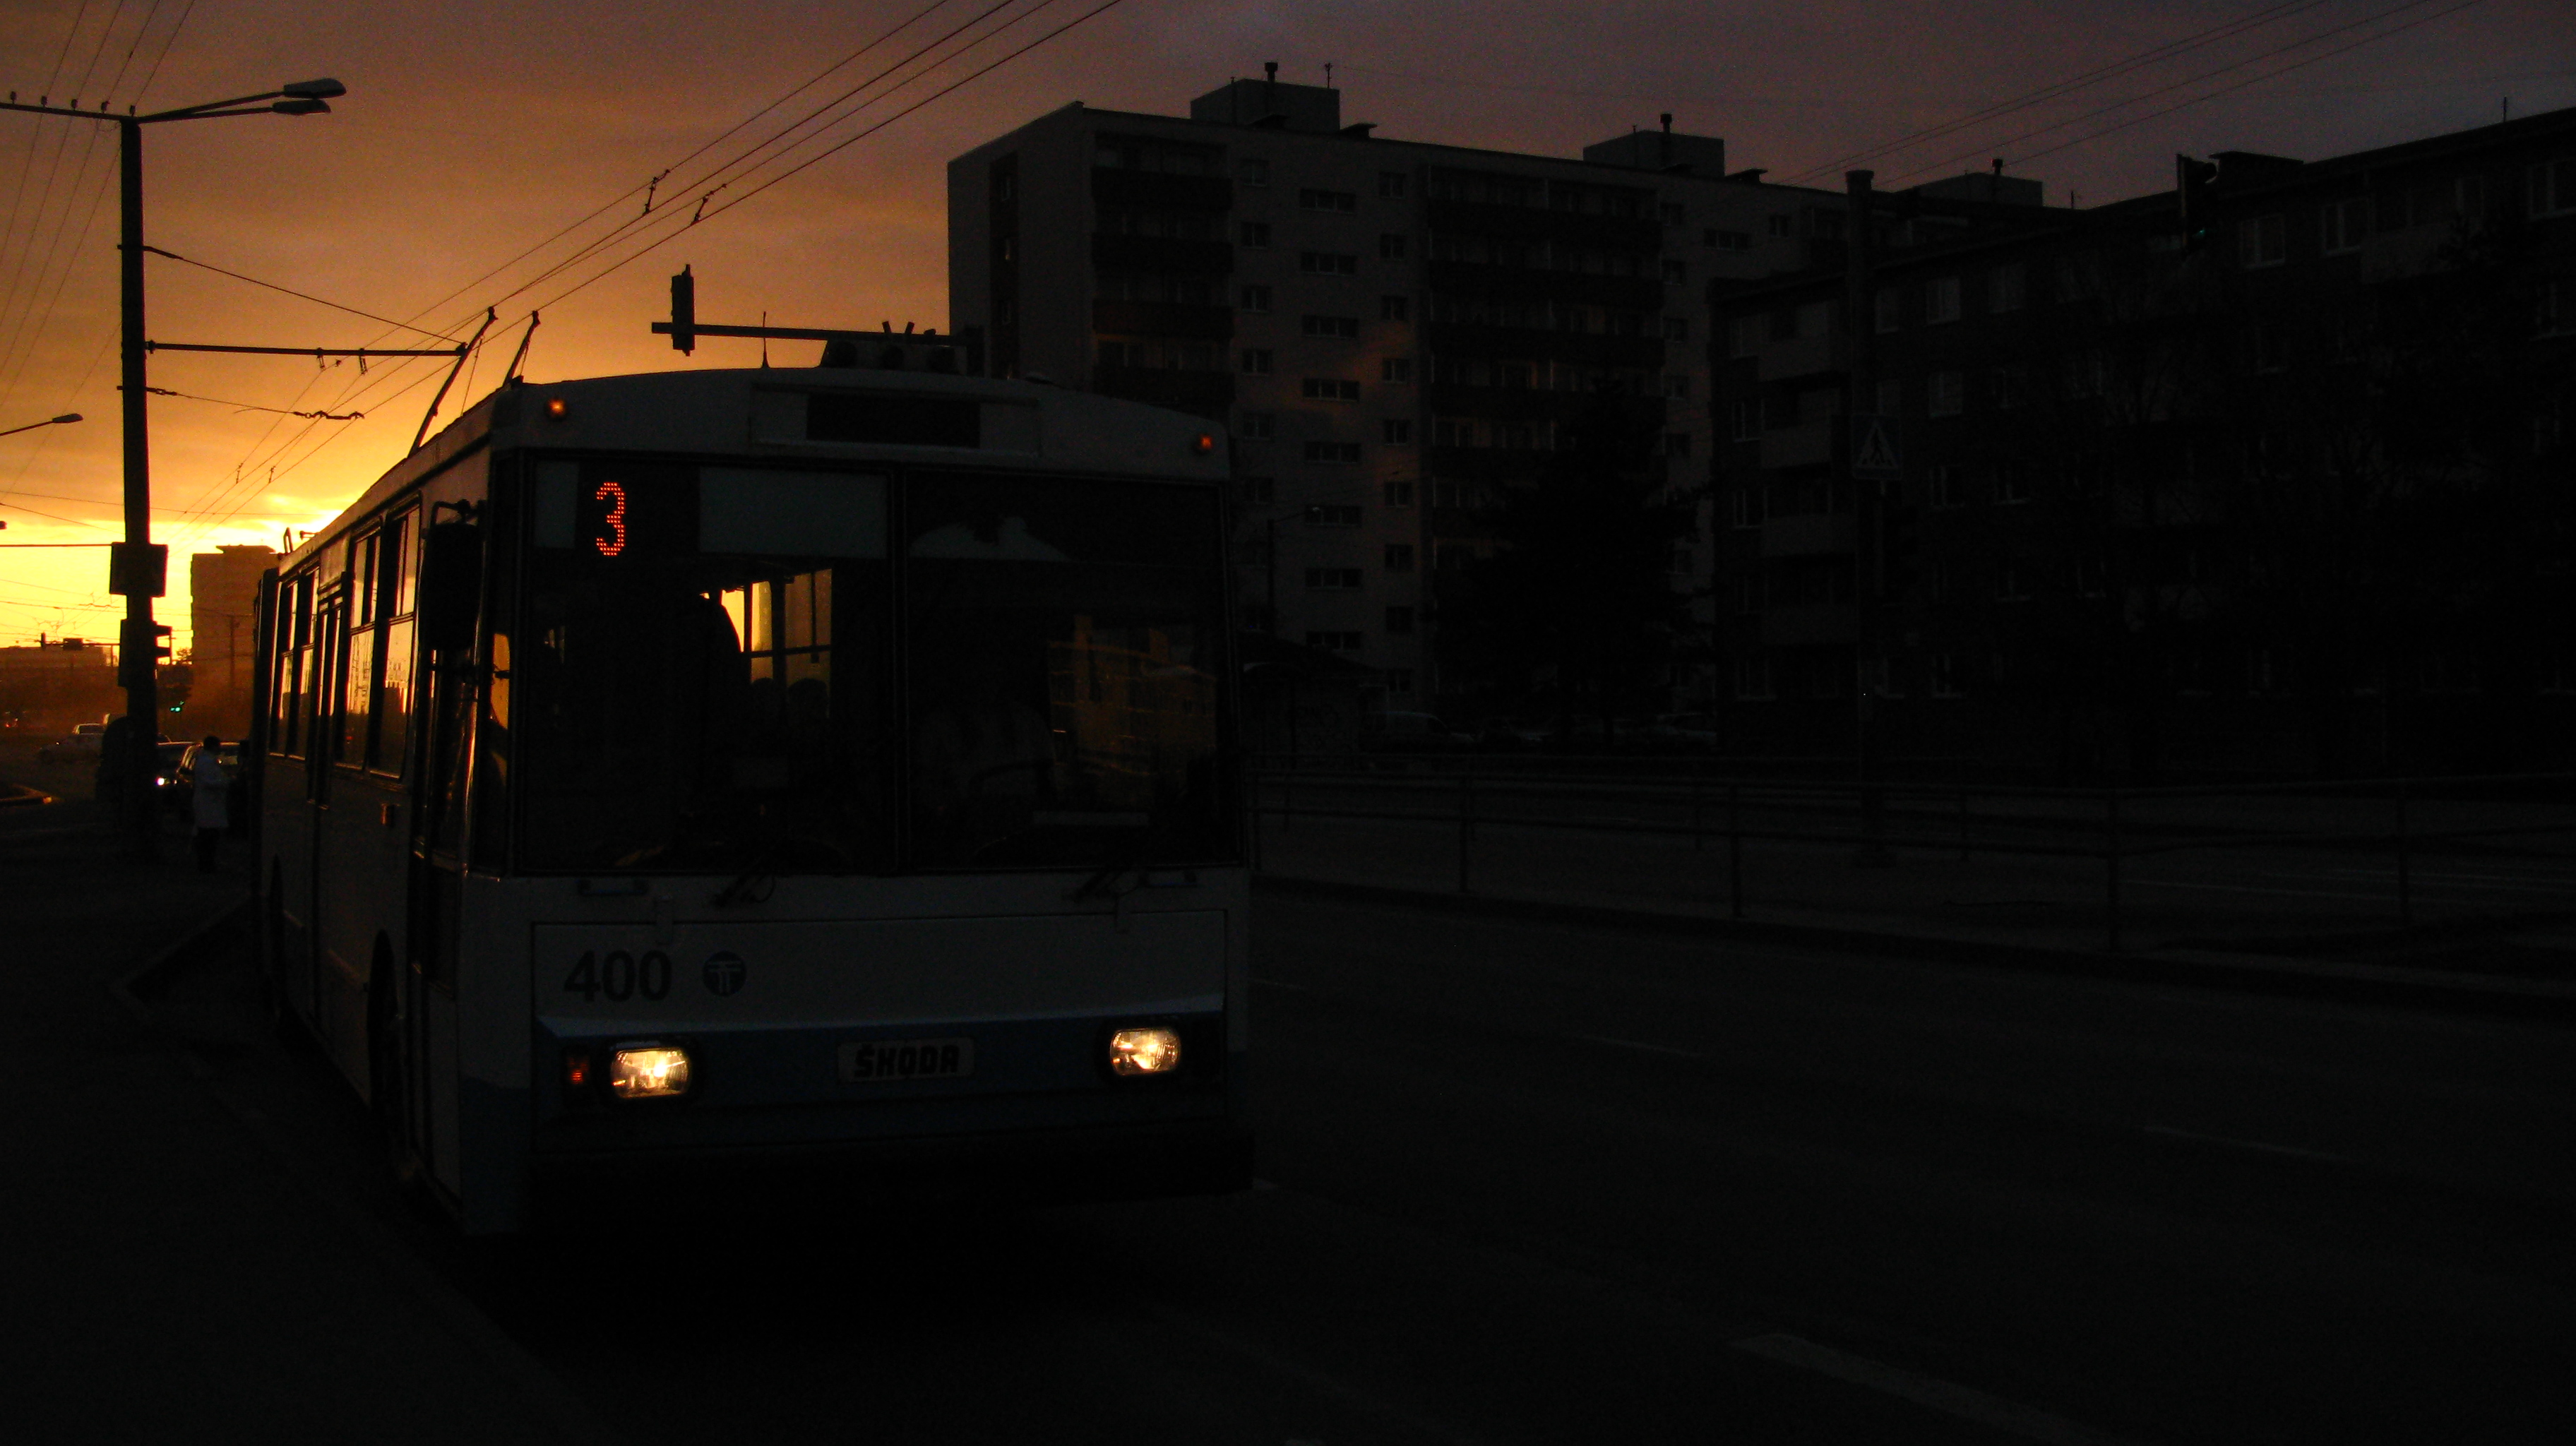 Trolley stop at sunset